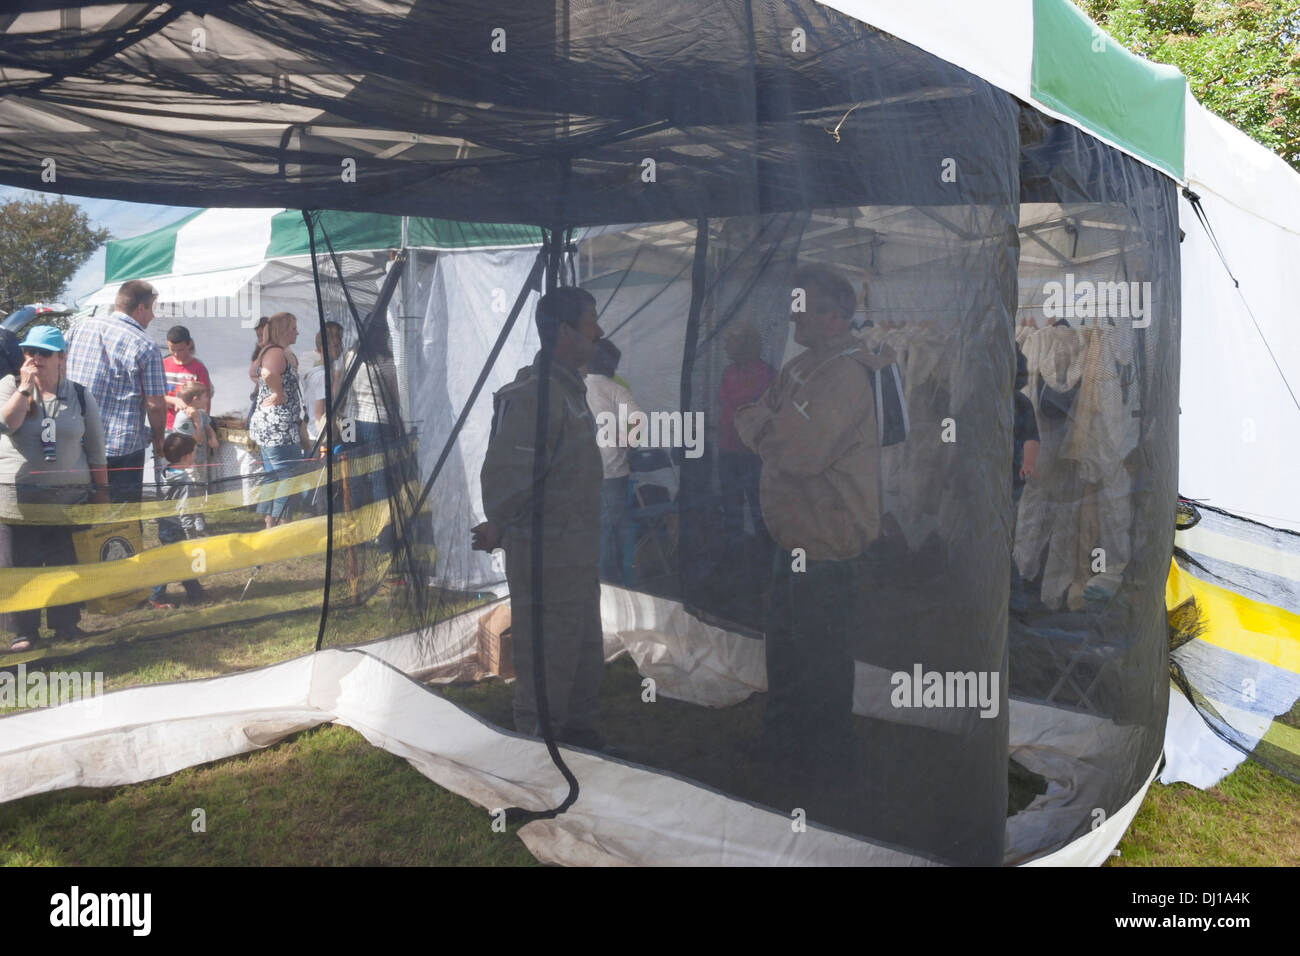 Beekeepers in apiary tent - Stock Image & Bee Tent Stock Photos u0026 Bee Tent Stock Images - Alamy